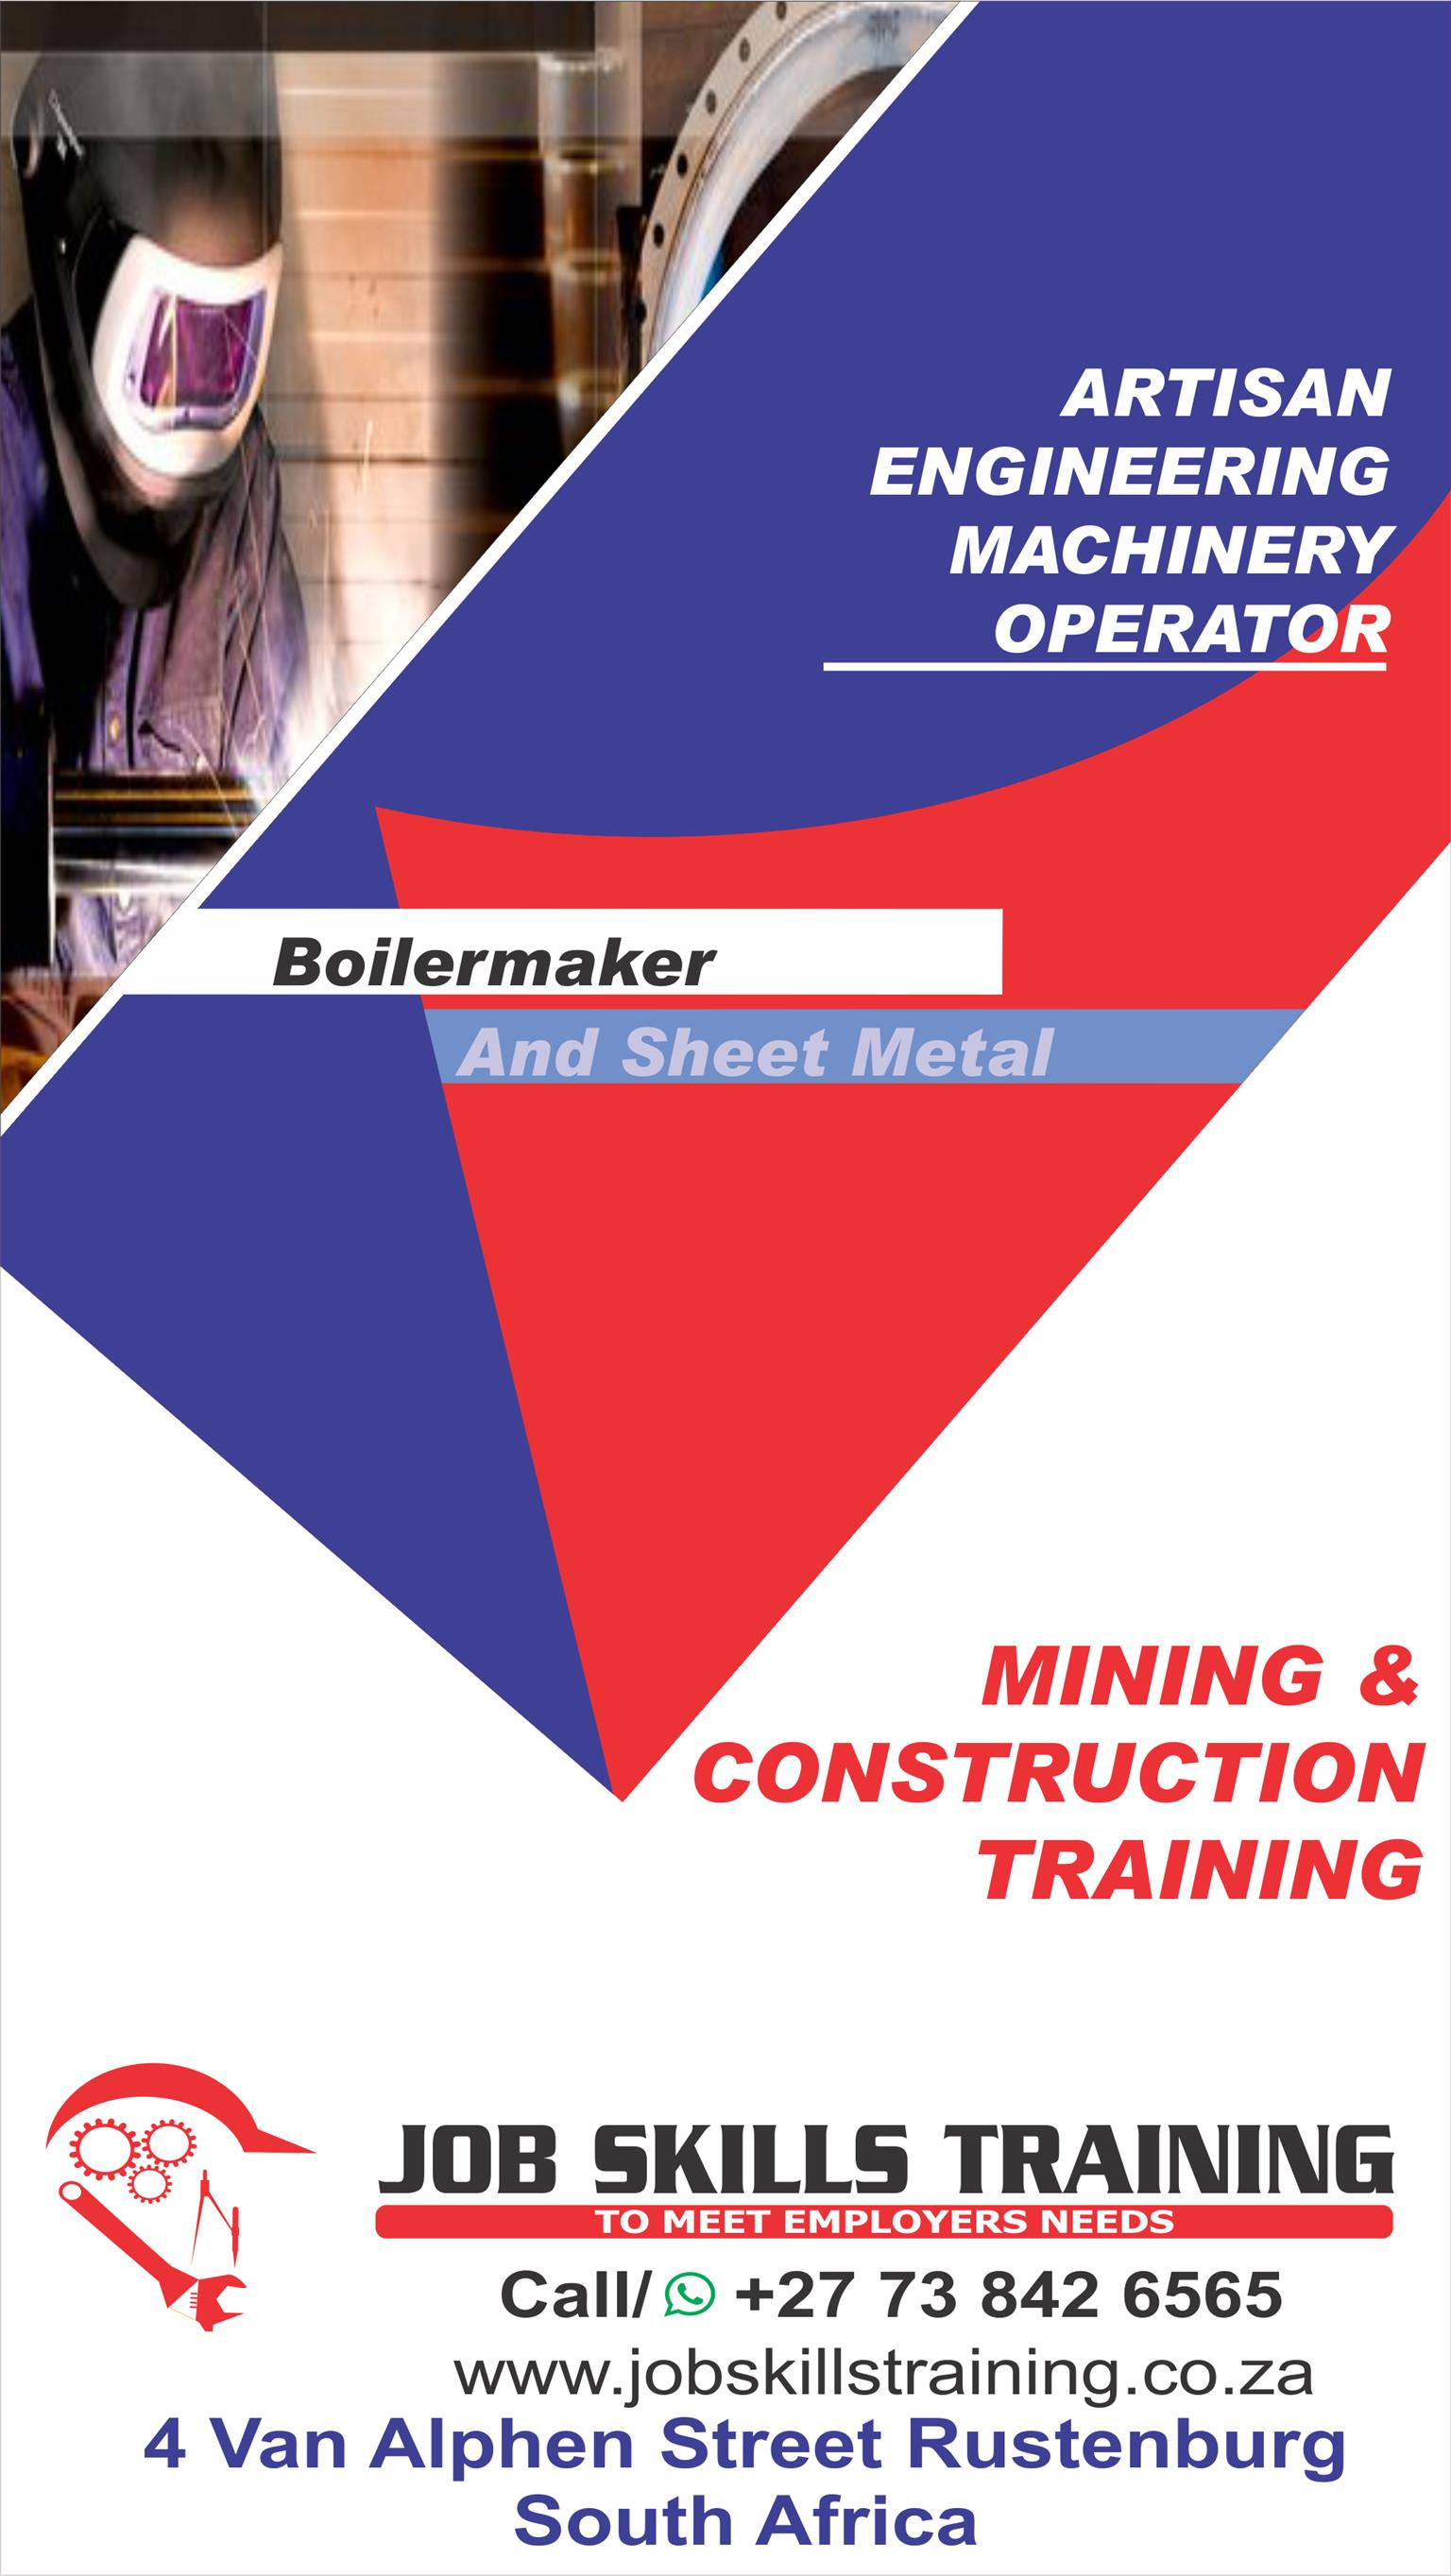 Welding Training certificate license Call: +27 73 842 6565 Rustenburg Namibia Botswana Lesotho